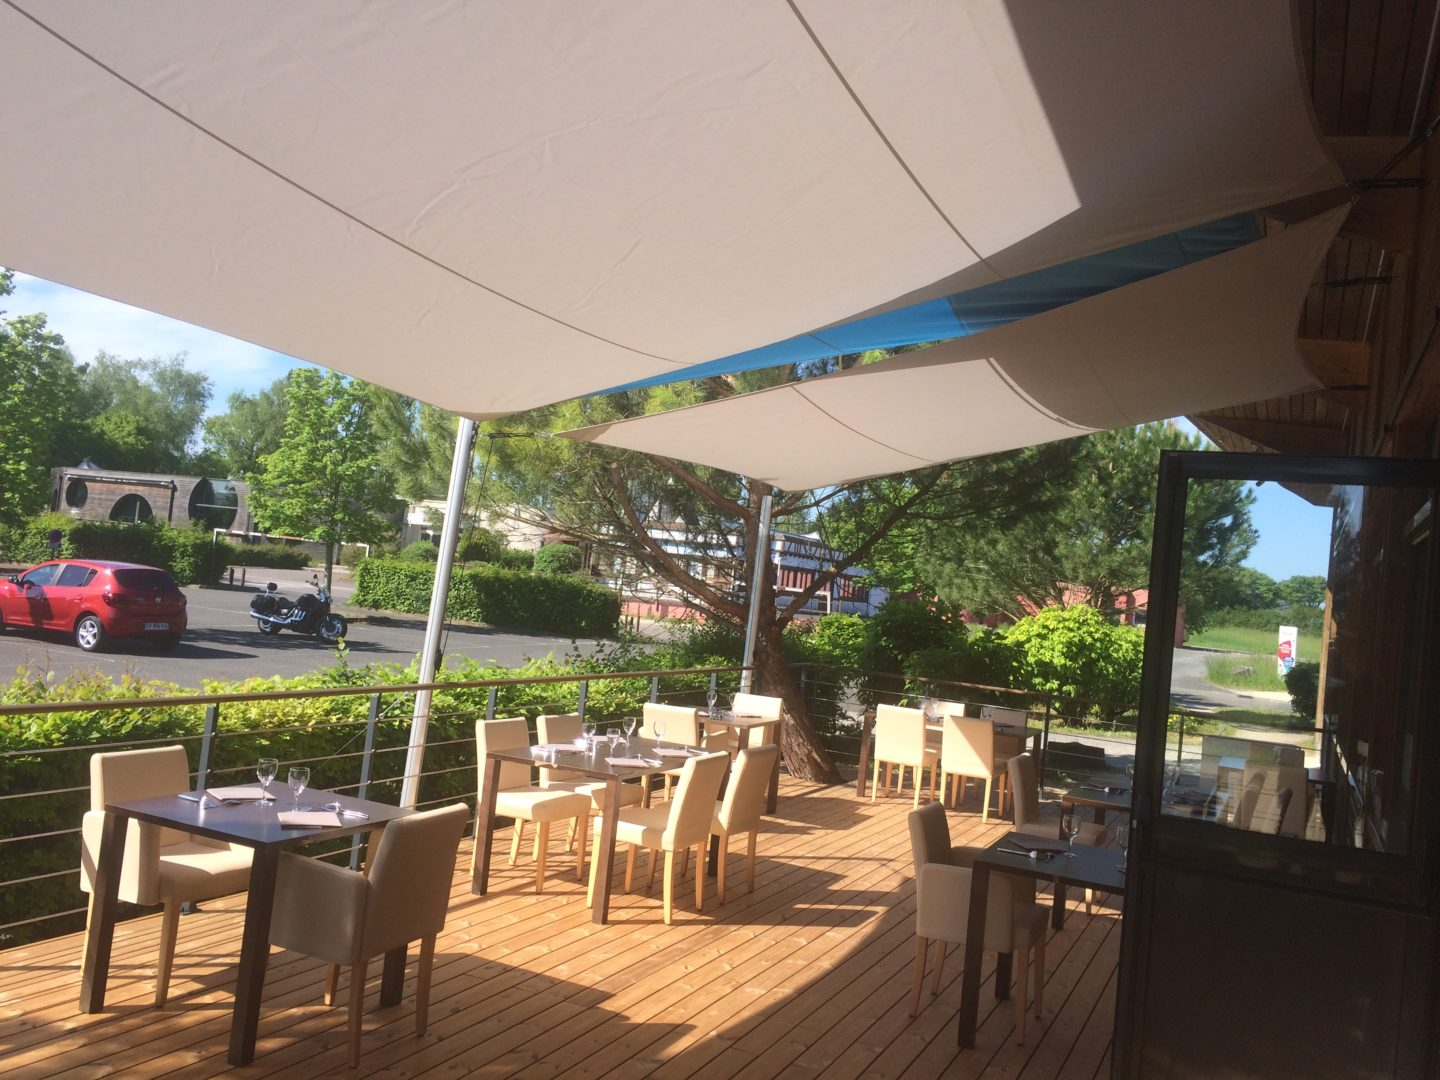 Terrasse mobilier GO - 1 - Le Grand Ouest